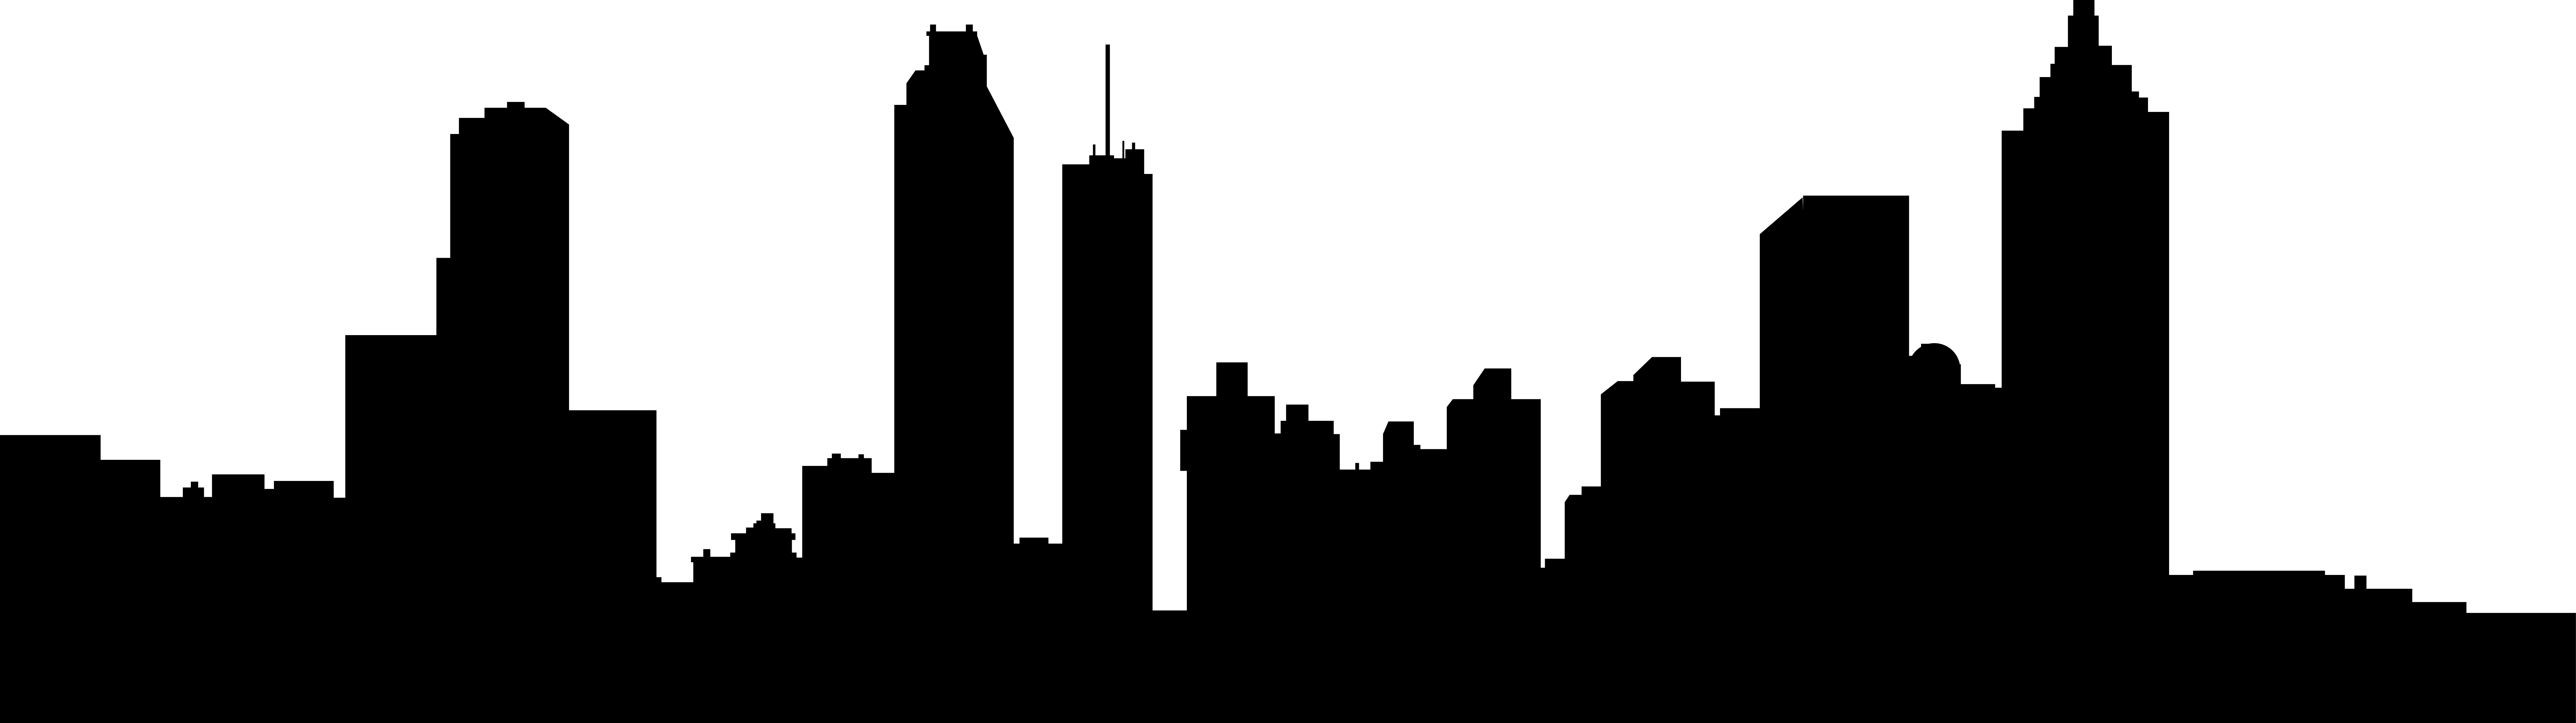 8059x2261 Image Of Chicago Skyline Clipart